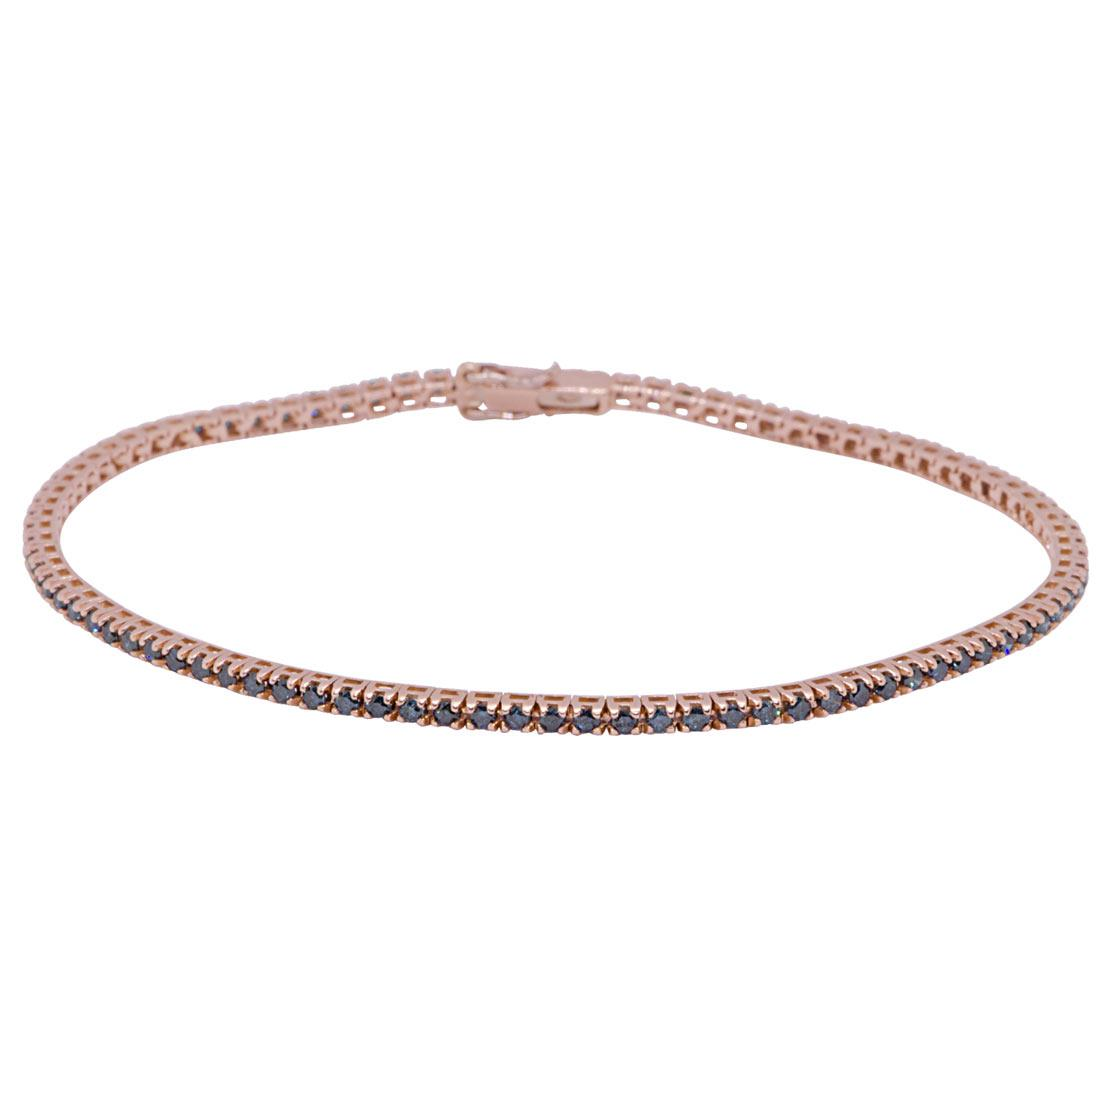 Bracciale tennis in oro rosa con diamanti neri 1,35 ct - ORO&CO